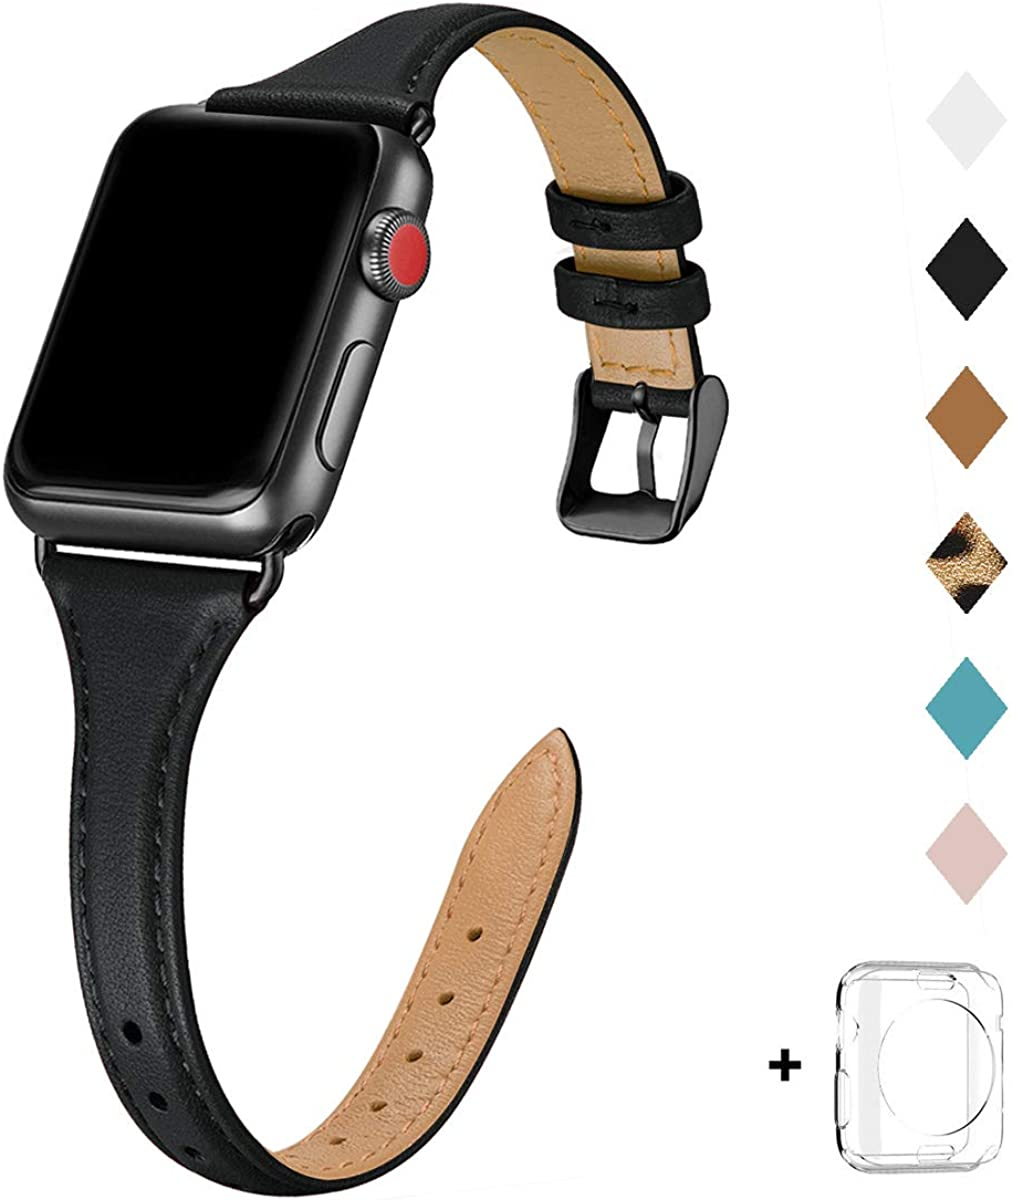 Bestig Leather Band Compatible for Apple Watch 38mm 40mm 42mm 44mm, Slim Thin Genuine Leather Replacement Strap for iWatch Series 5/4/3/2/1 (Black Band+Black Adapter, 38mm 40mm)